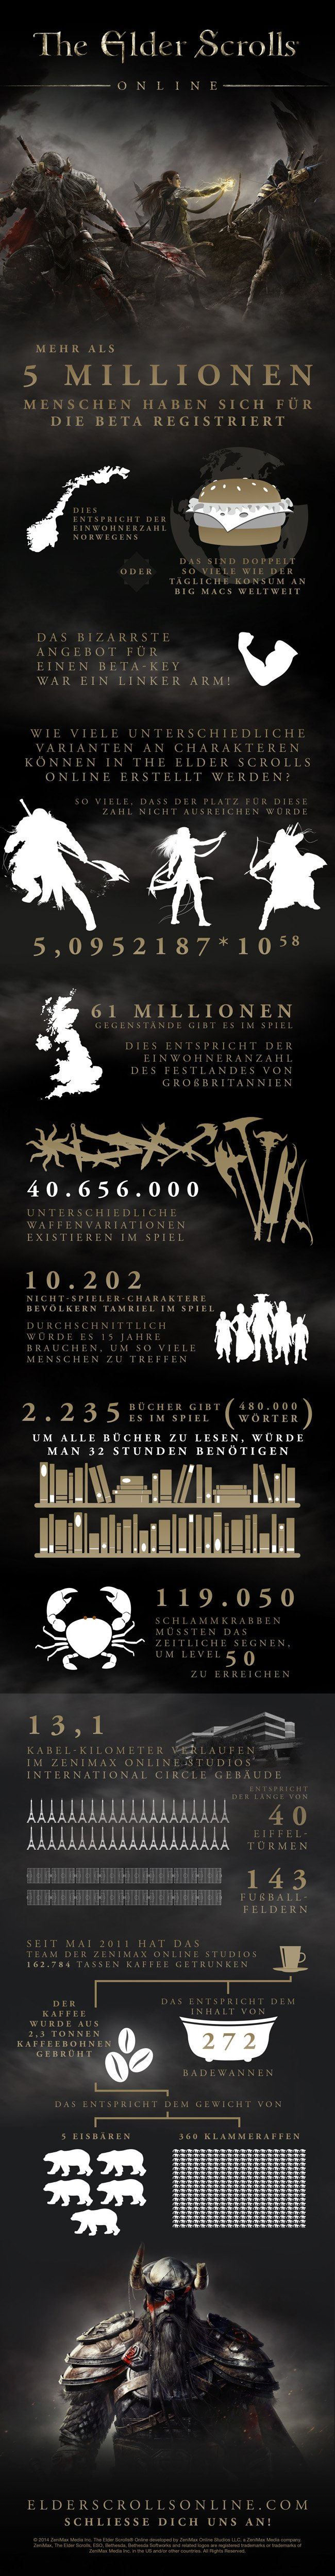 The-Elder-Scrolls-Online-infographic_Germanblogcheck